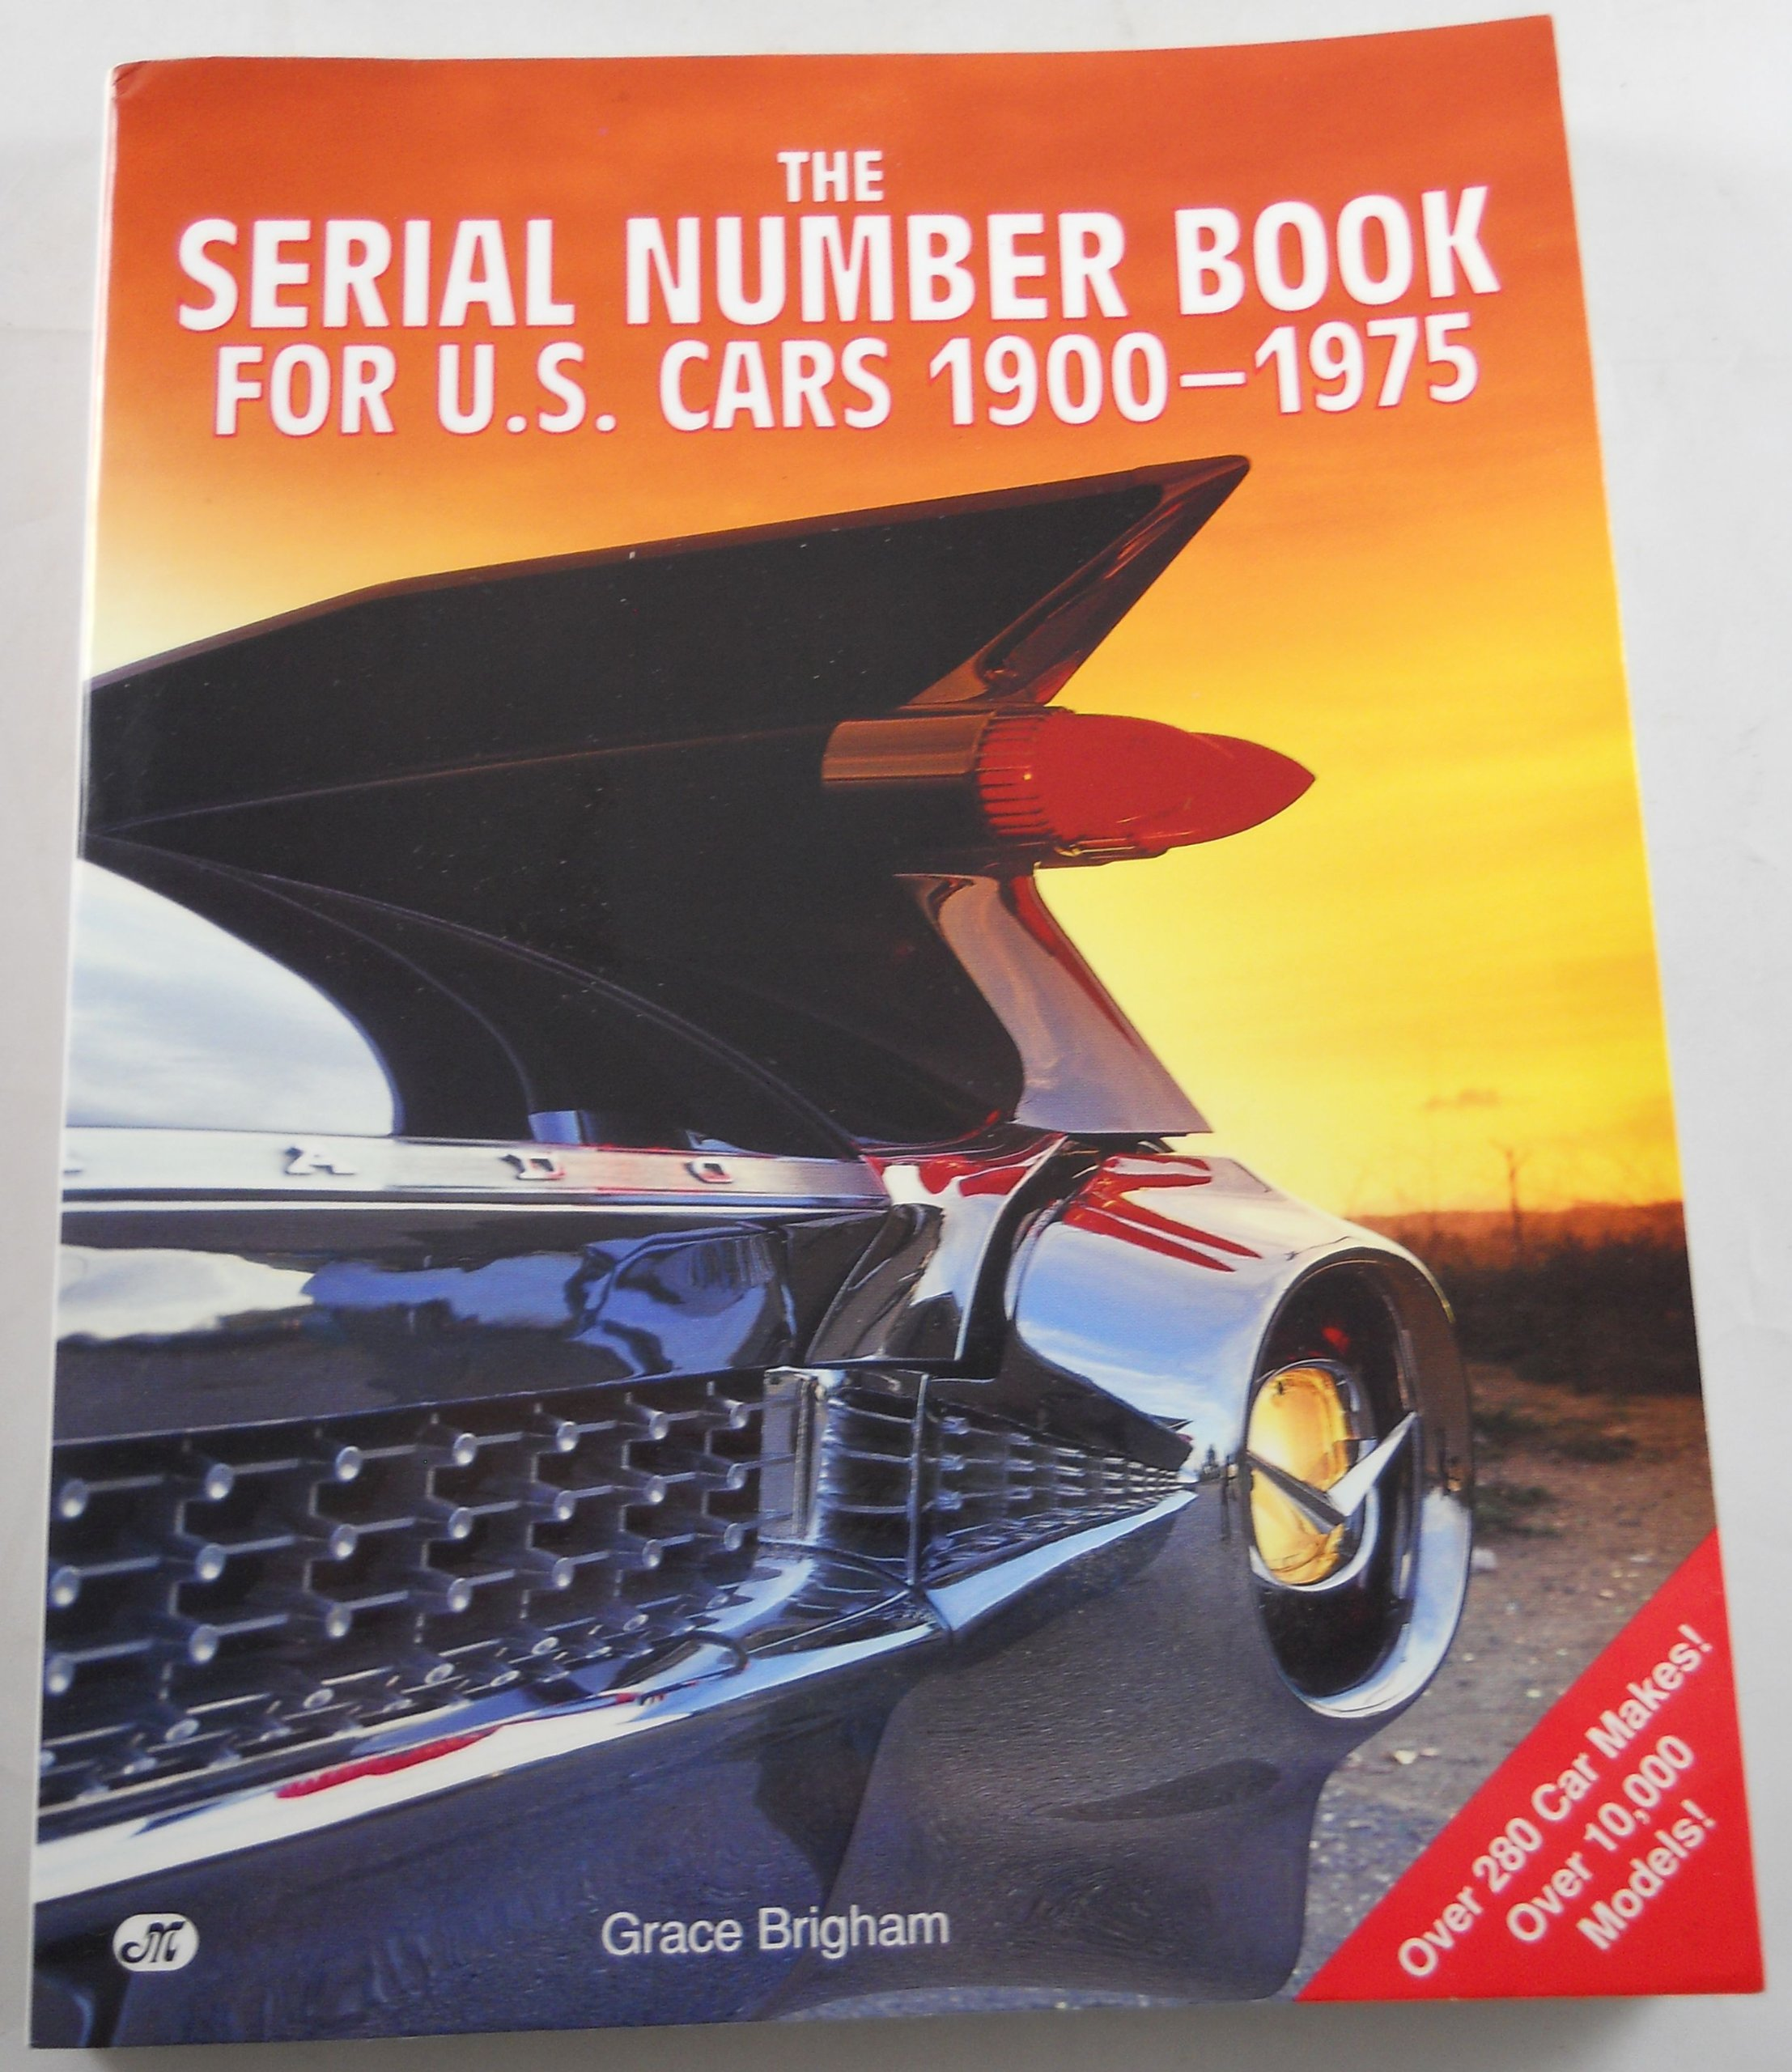 The Serial Number Book for U.S. Cars 1900-1975